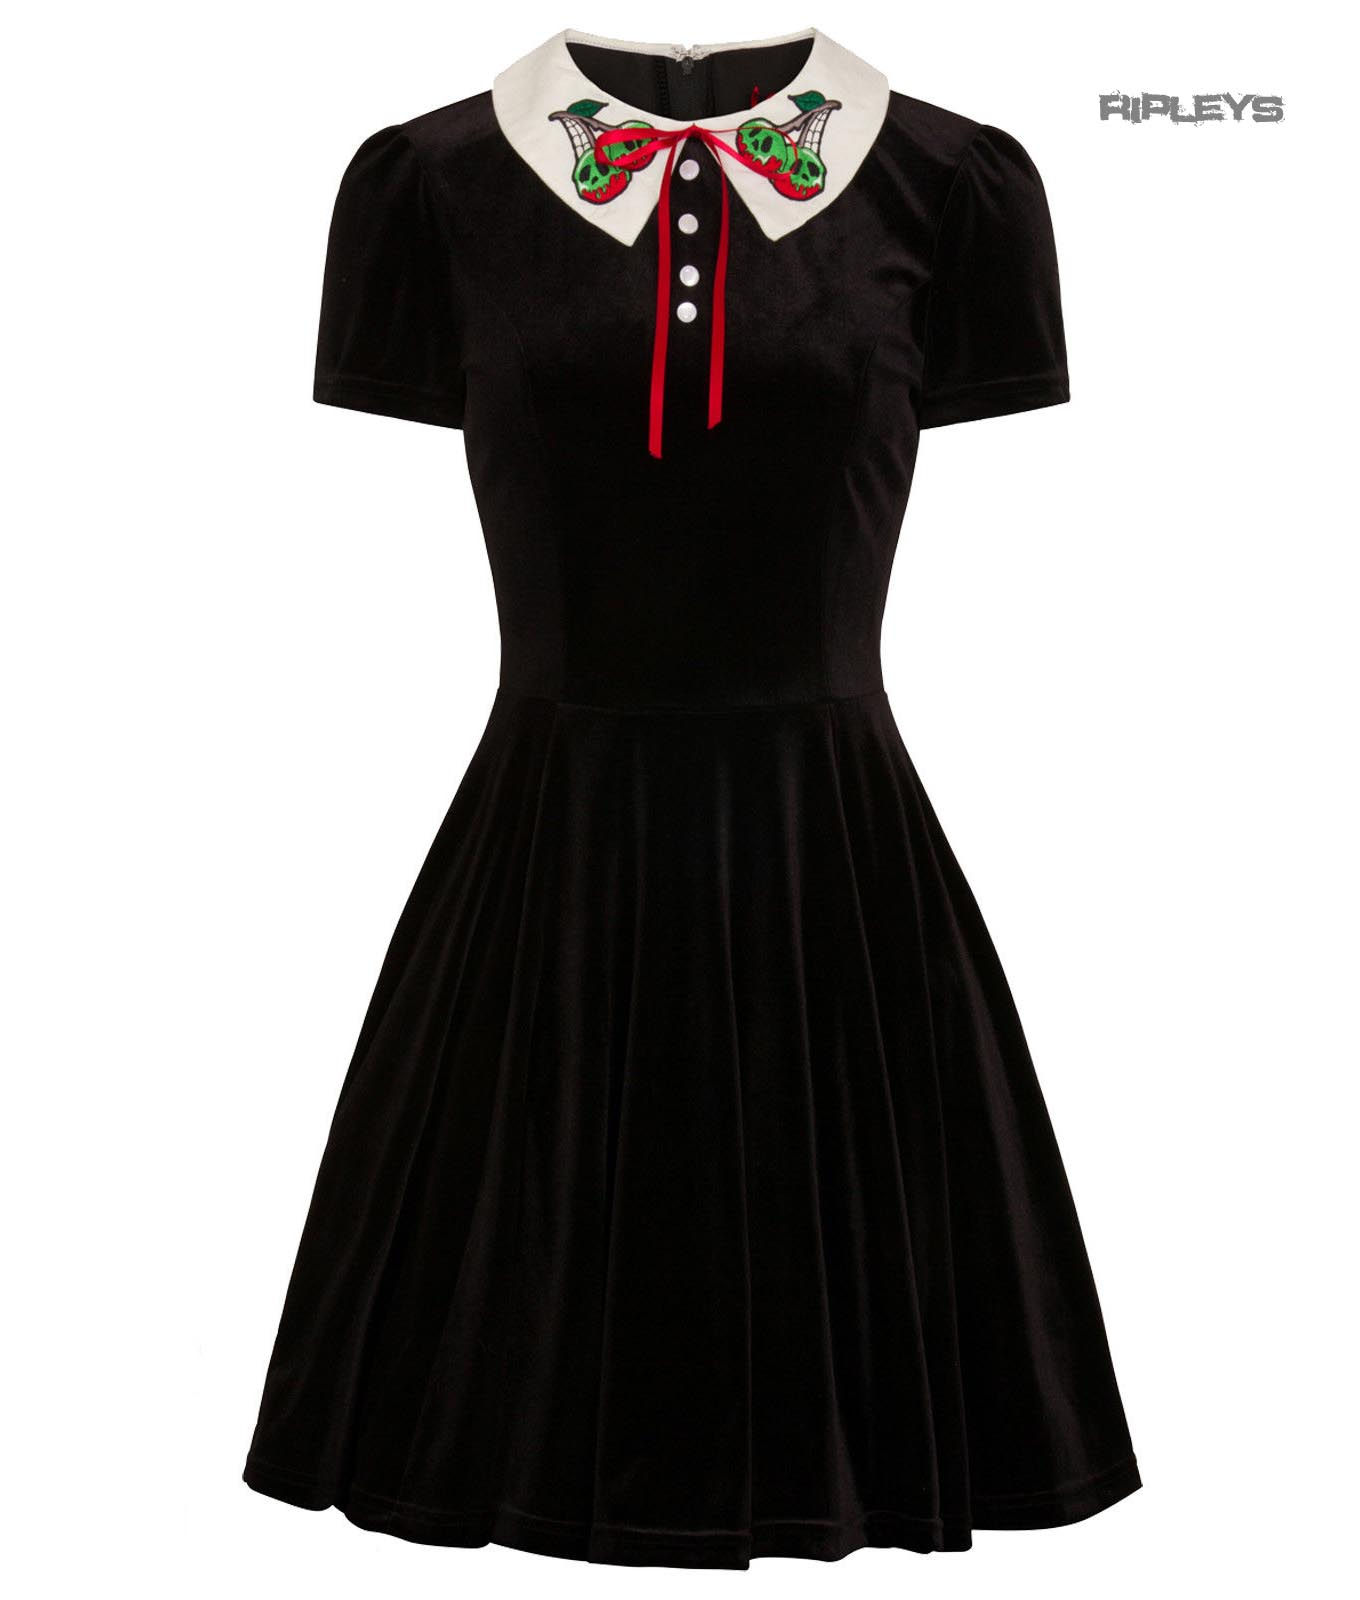 Hell-Bunny-Goth-Mini-Skater-Dress-NIGHTSHADE-Poison-Cherry-Black-Velvet-All-Size thumbnail 6